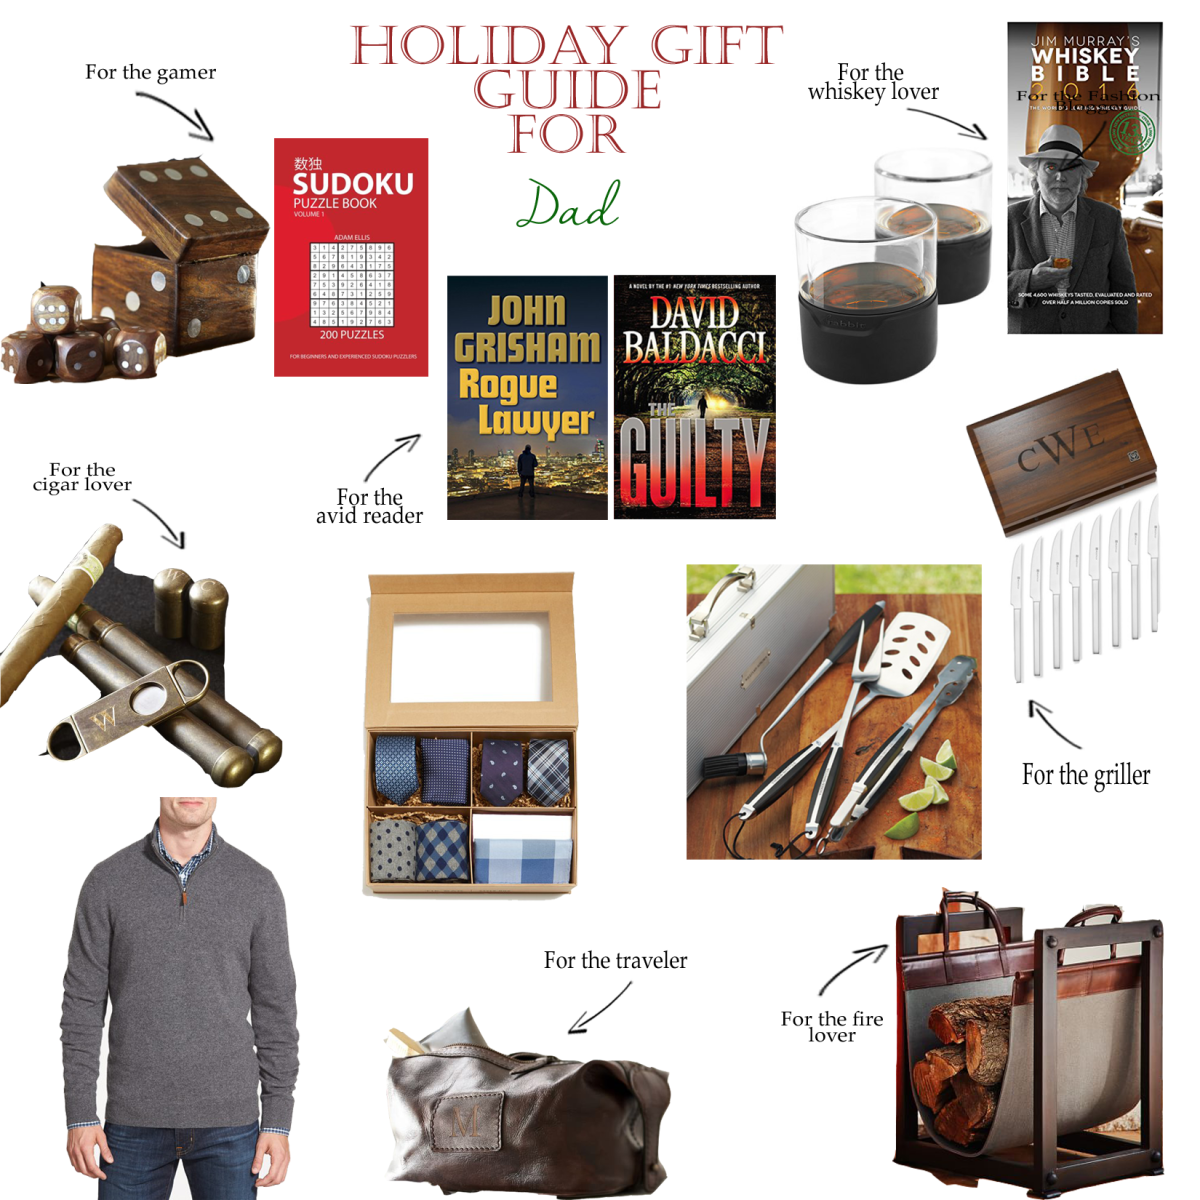 Holiday gift guide Archives - Peaches In A Pod